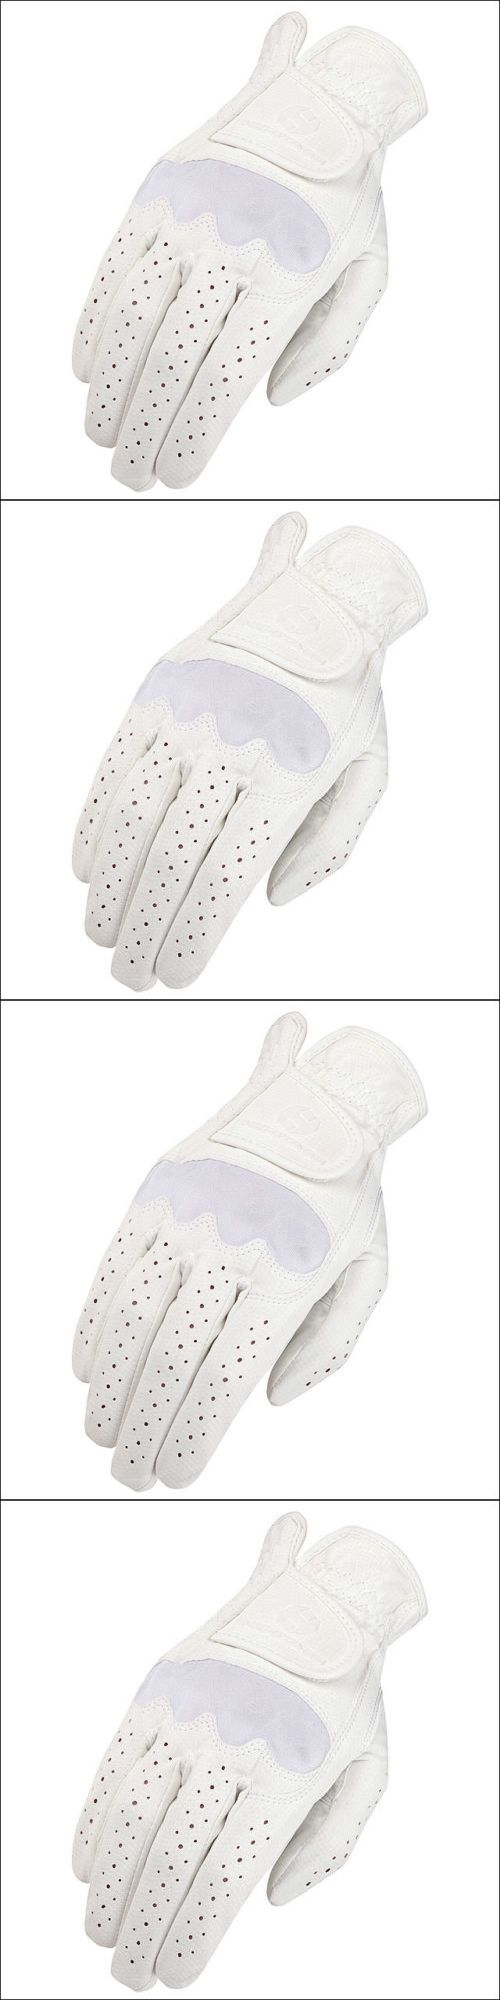 Ladies leather horse riding gloves - Riding Gloves 95104 07 Size Heritage Spectrum Show Horse Riding Equestrian Glove Leather White Buy